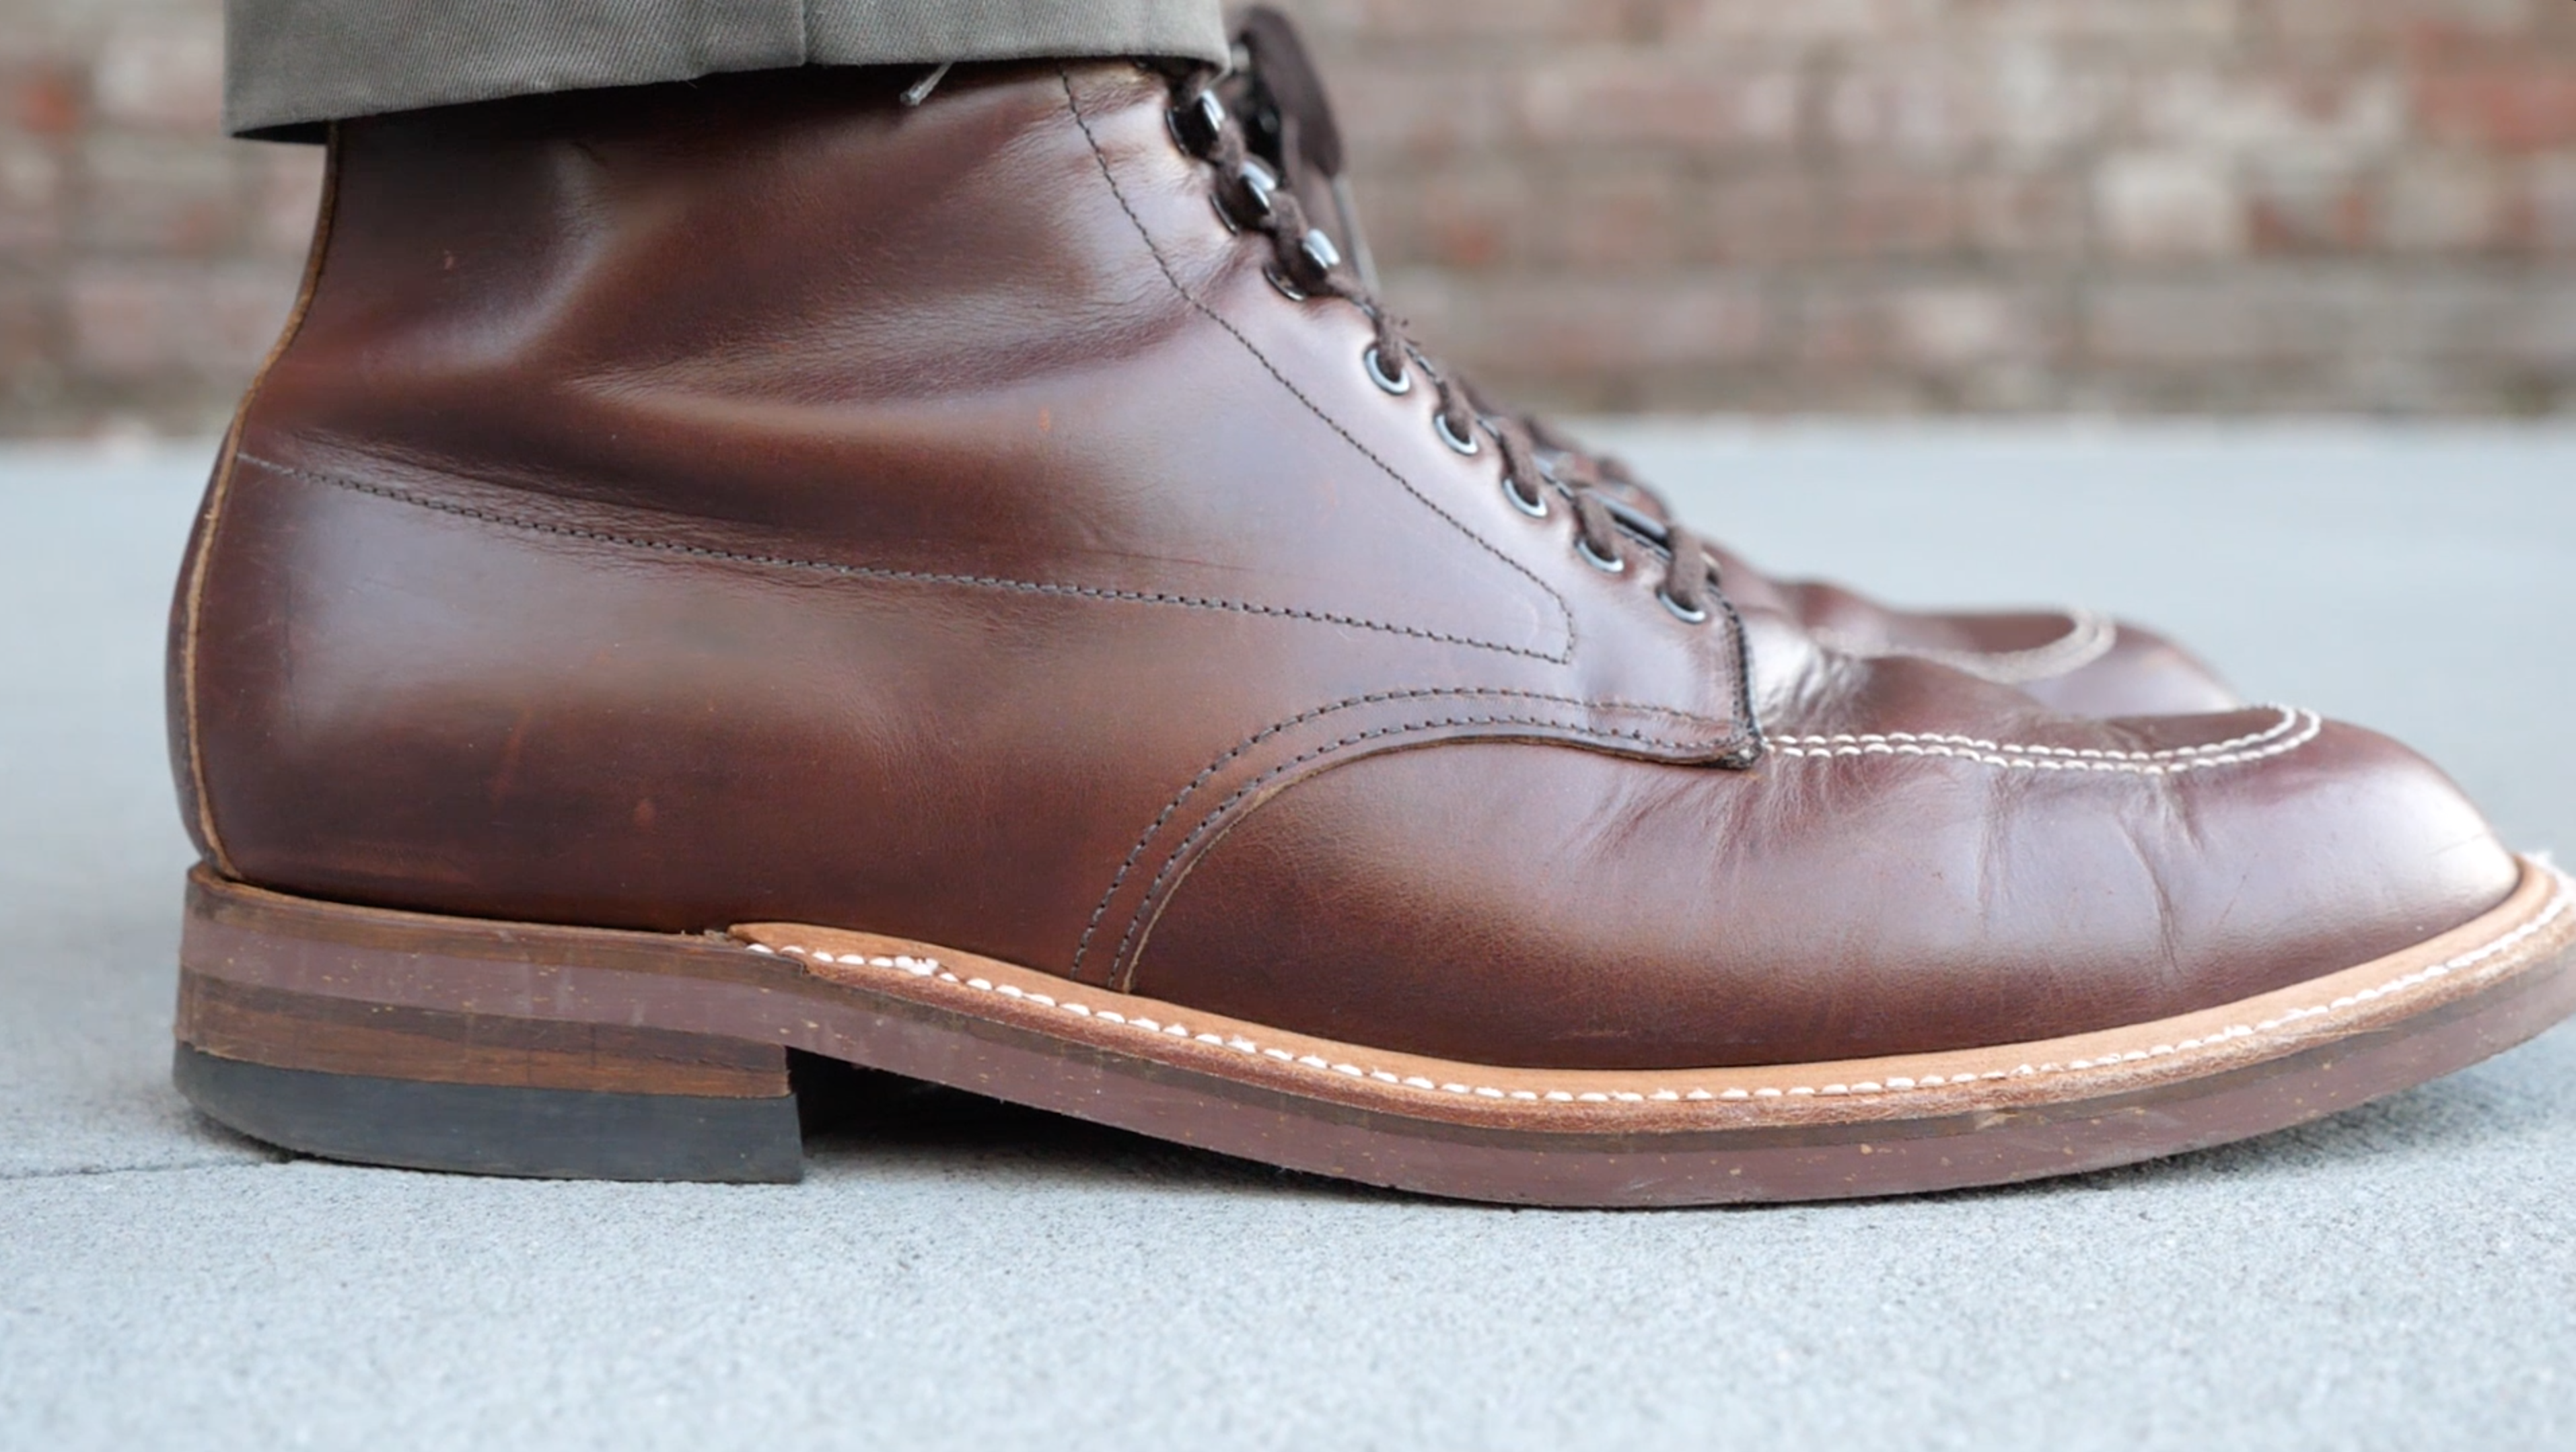 Alden Indy 403 boot side